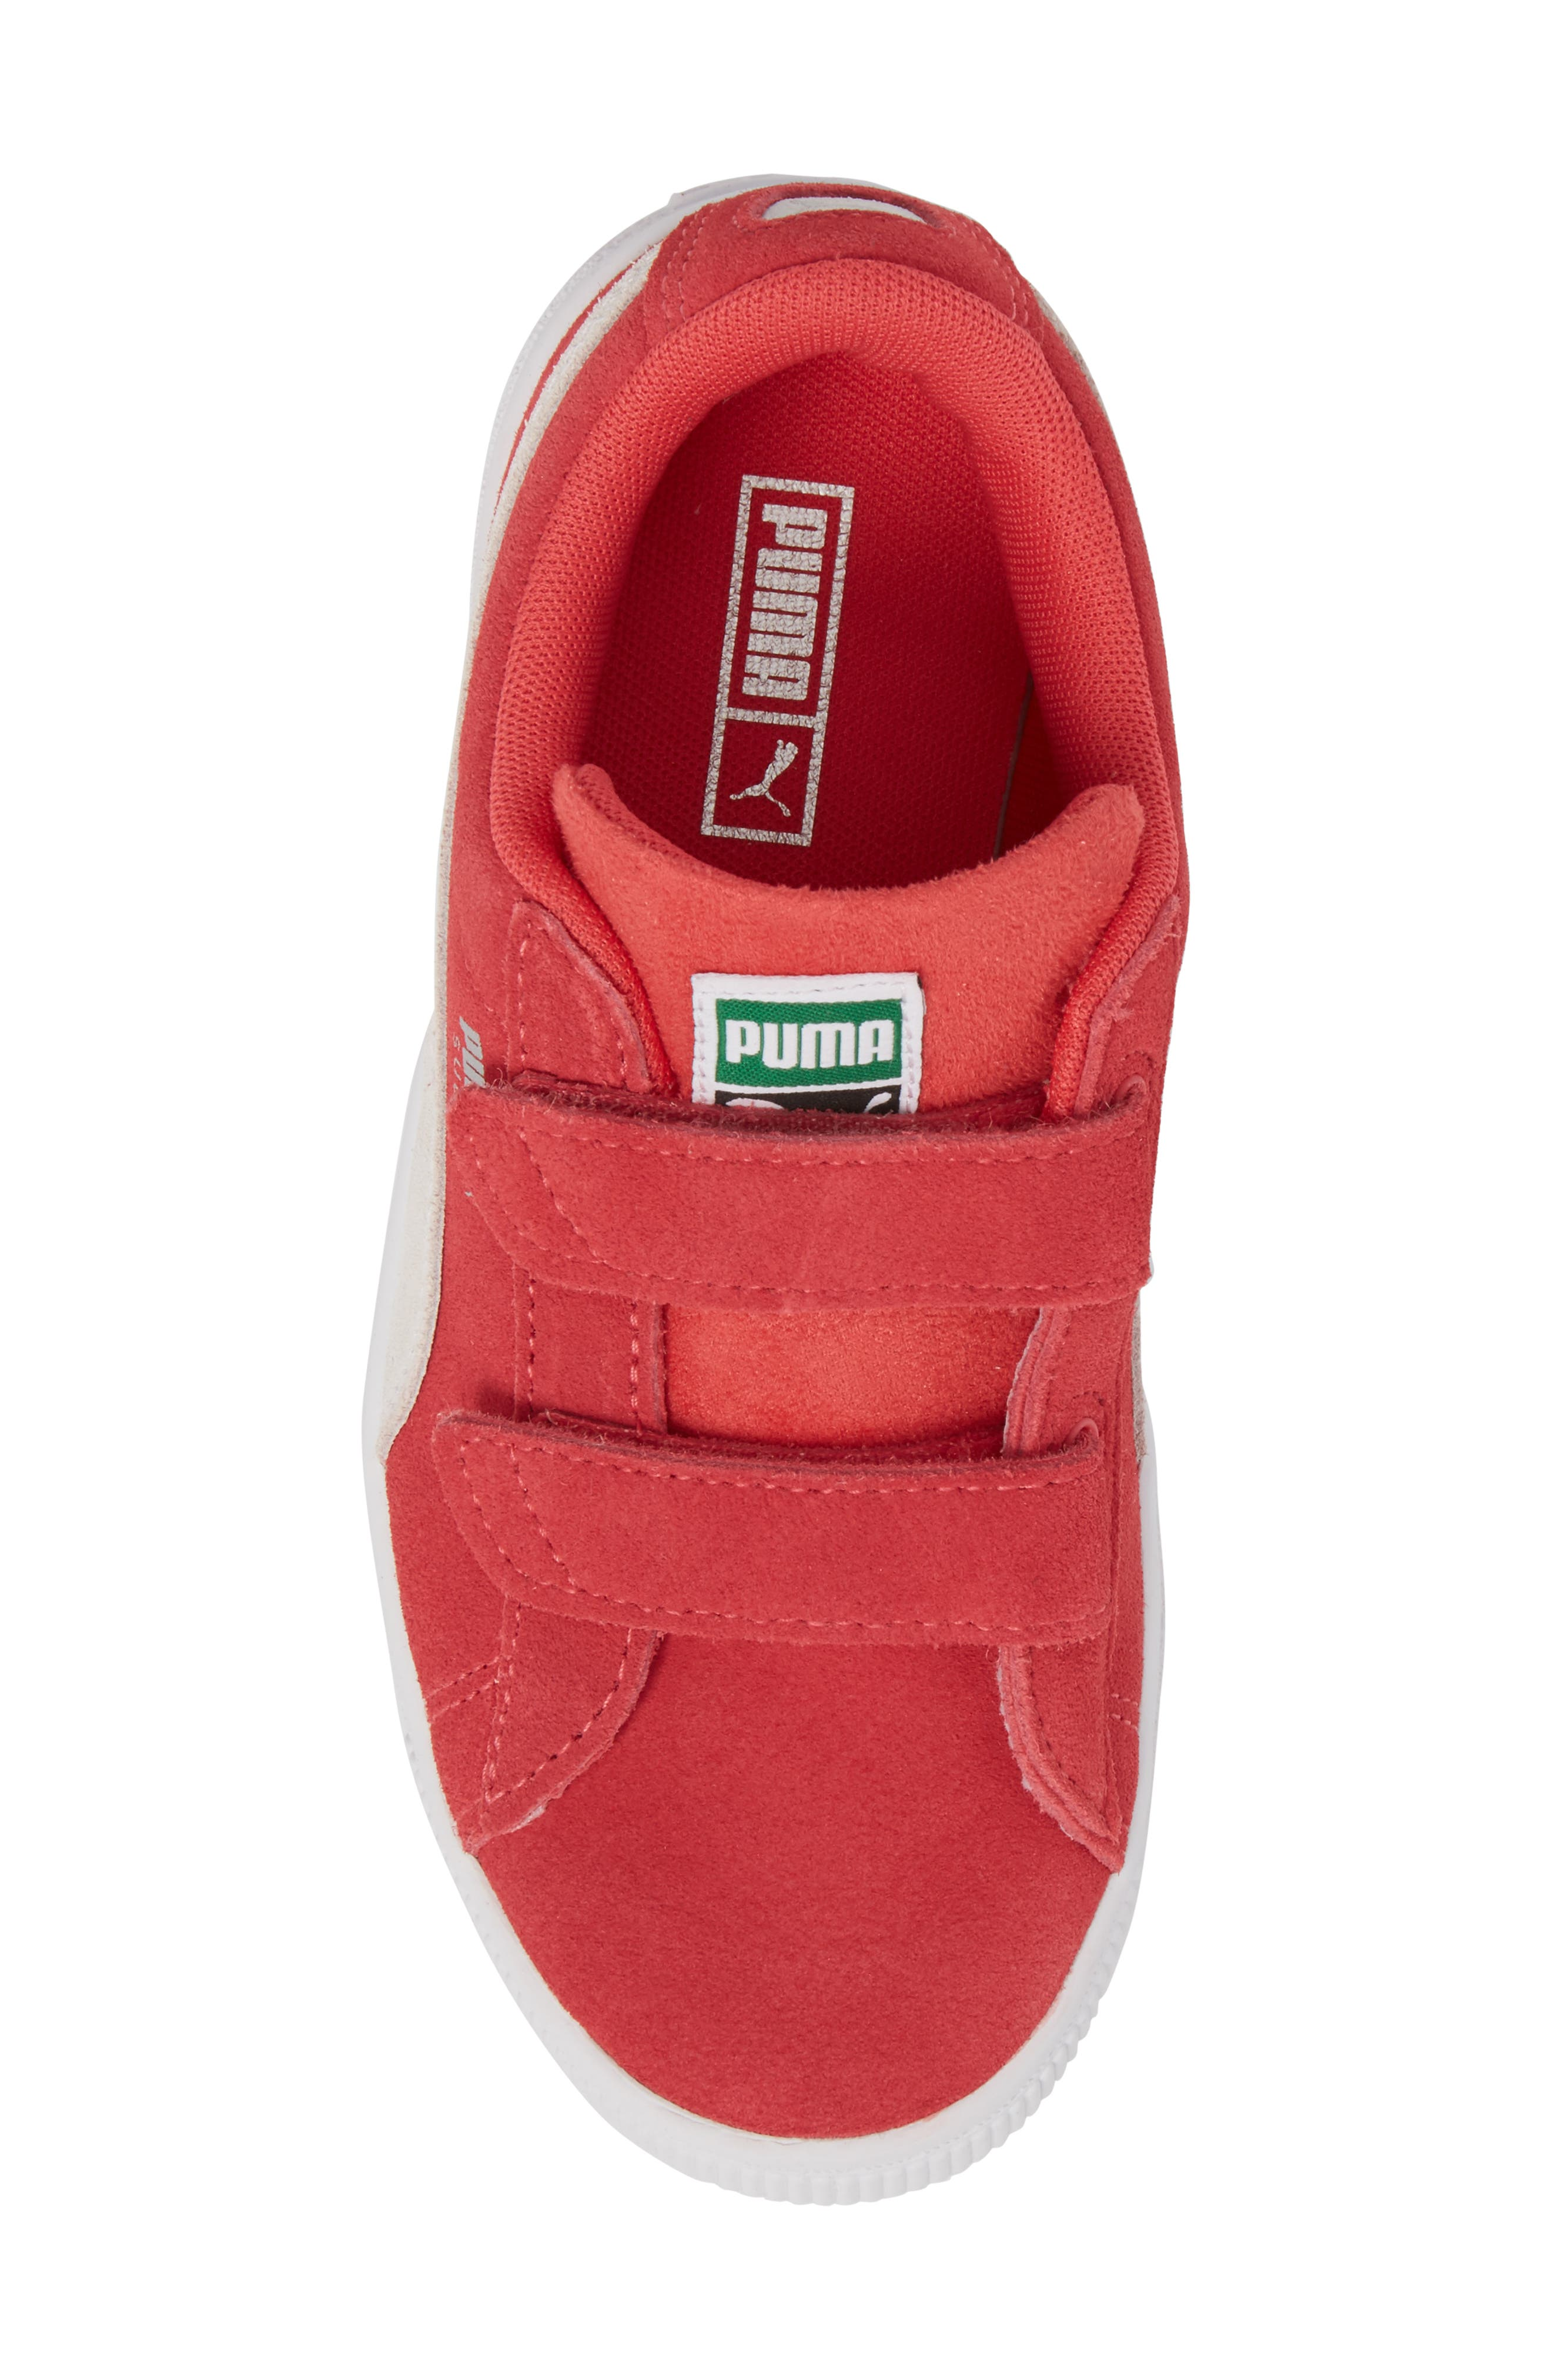 Suede Classic Sneaker,                             Alternate thumbnail 5, color,                             PARADISE PINK/ PUMA WHITE